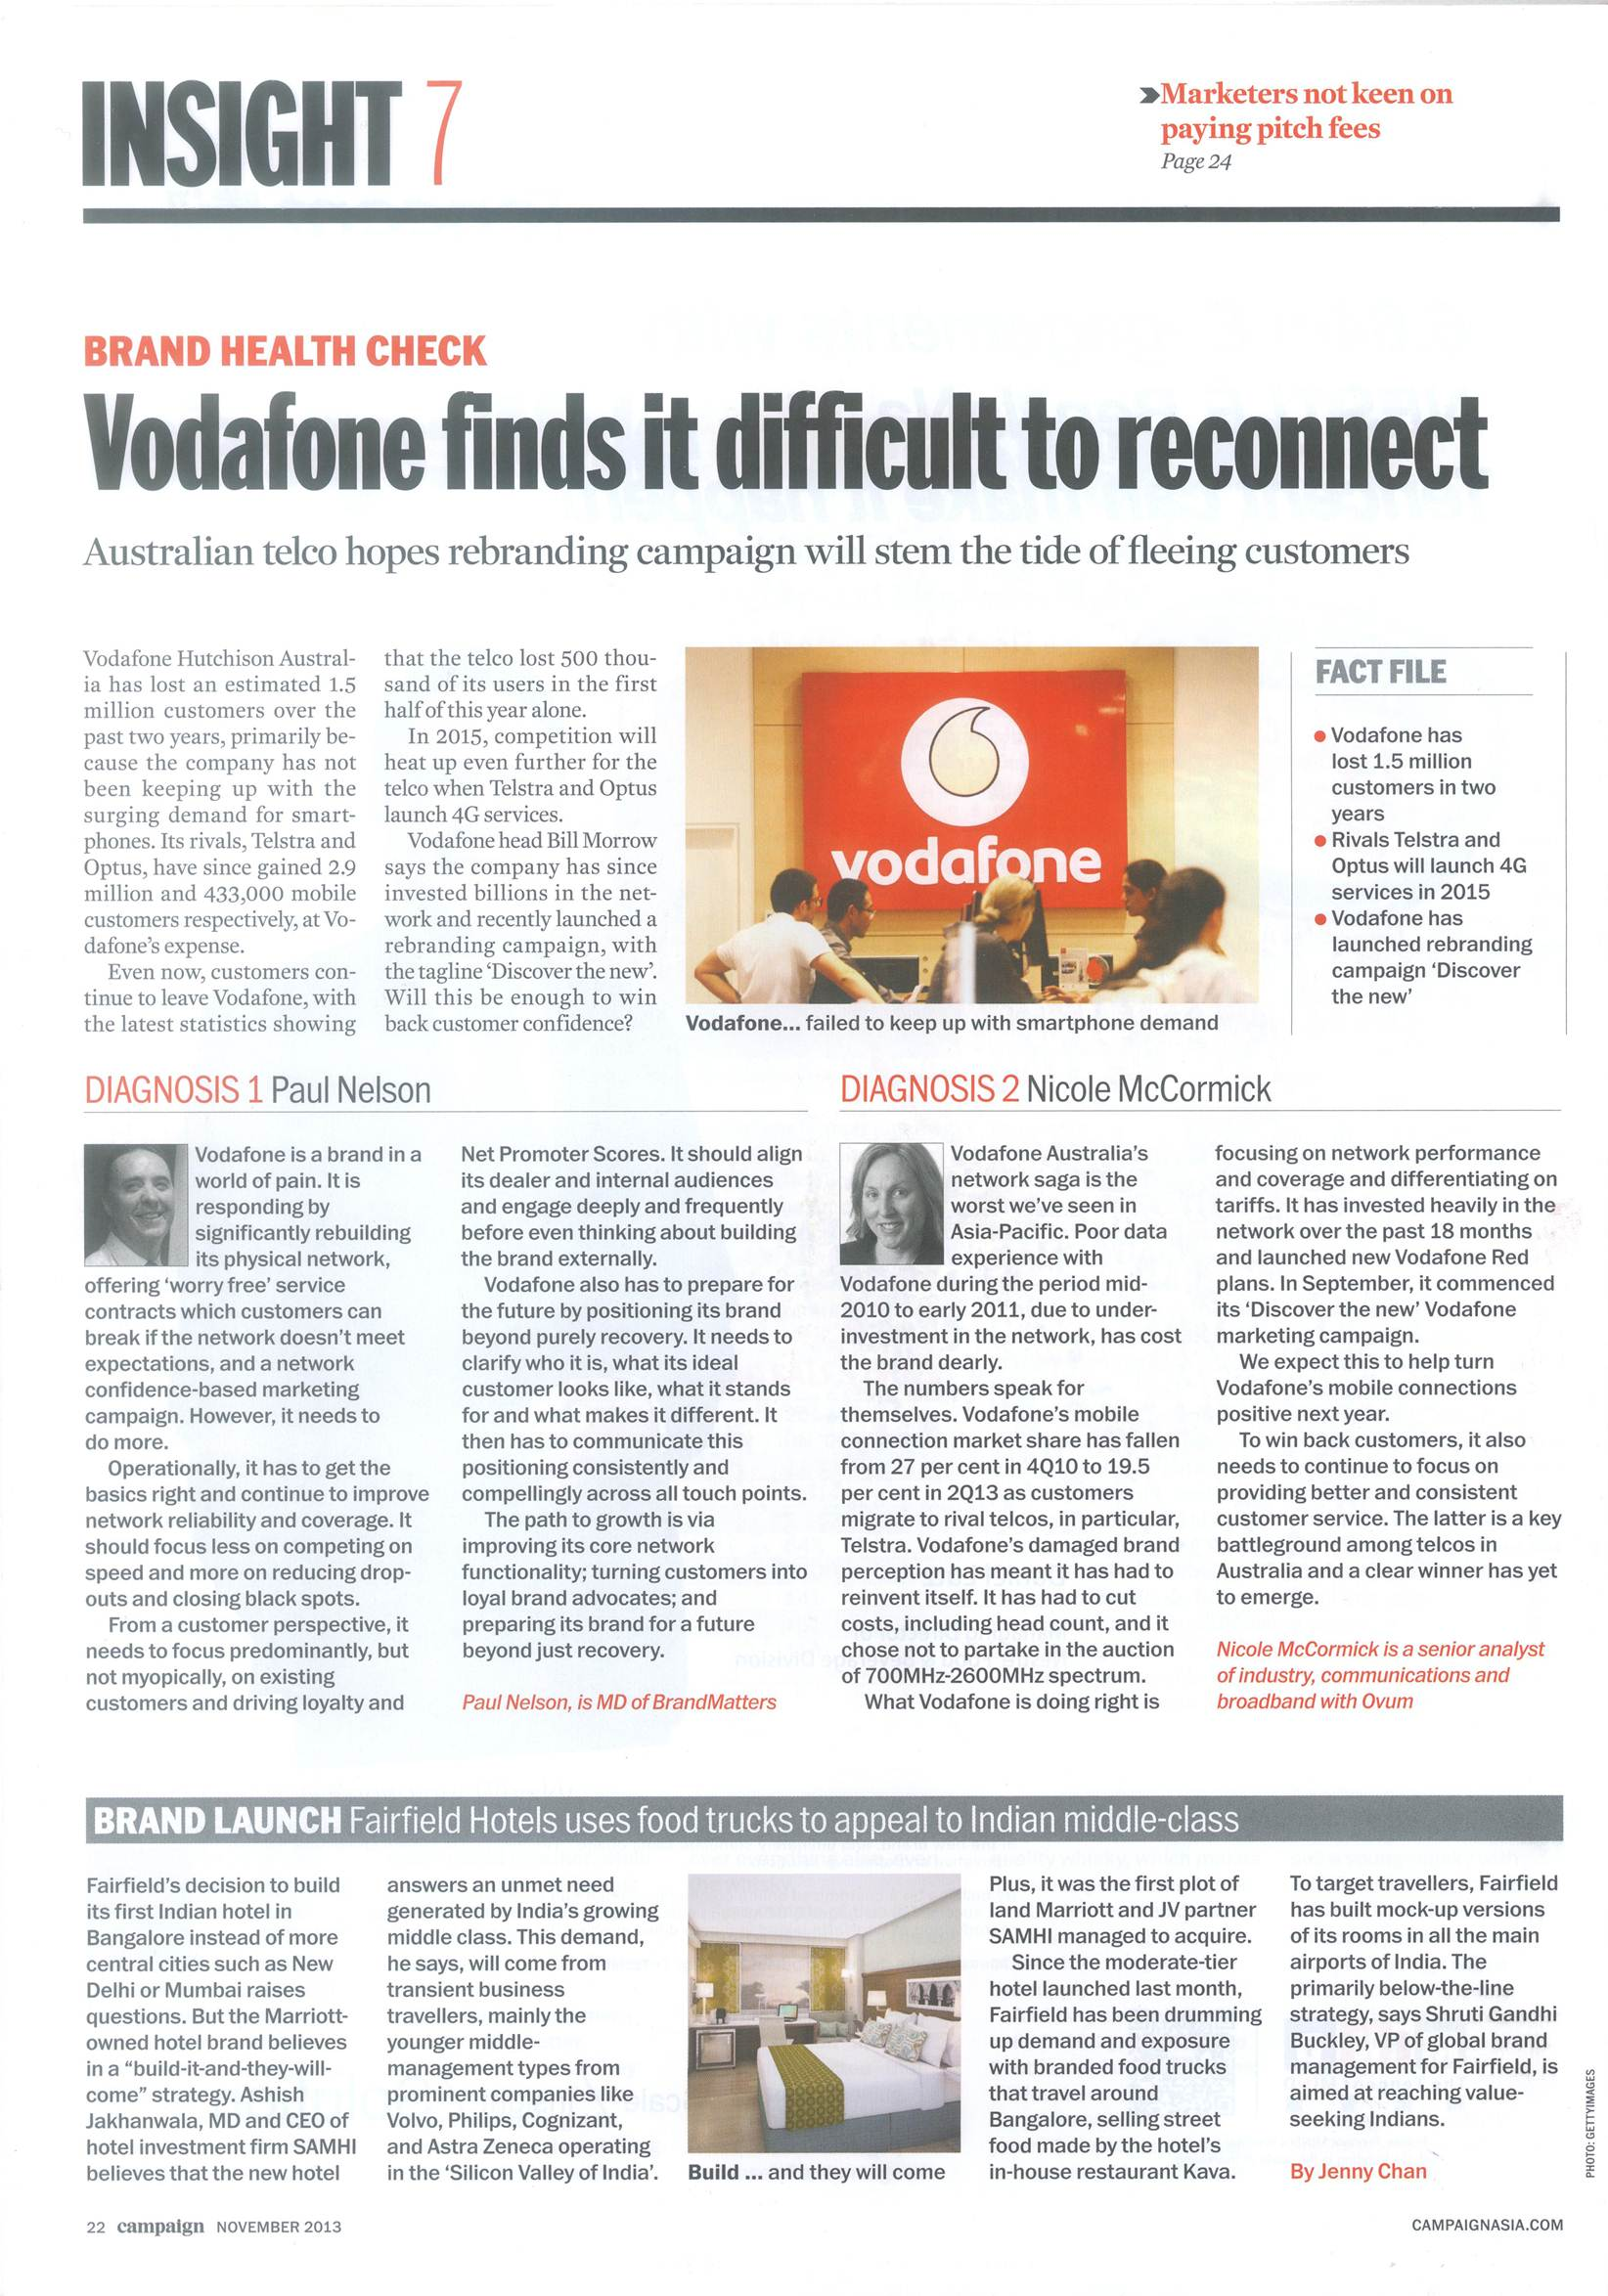 BrandMatters MD Paul Nelson talks about brand strategy and Vodafone